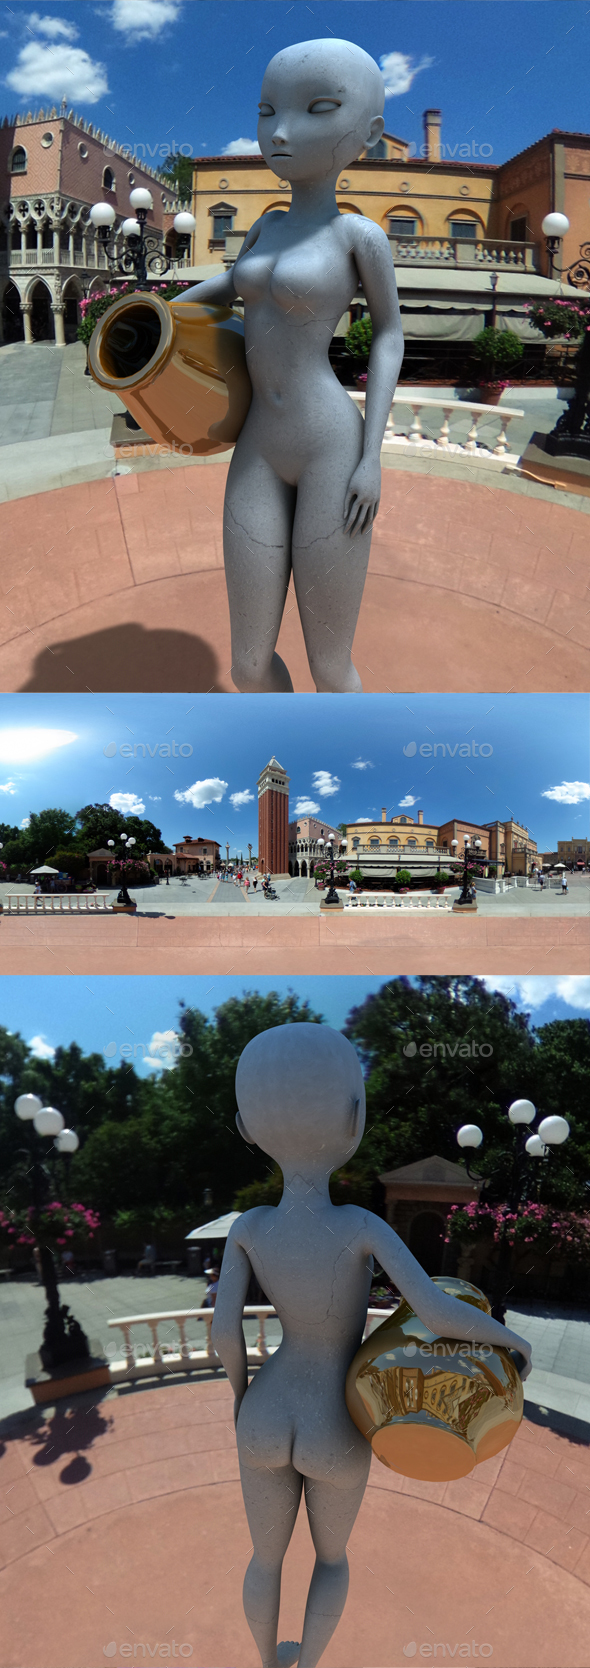 Sunny Italian Town Square HDRI - 3DOcean Item for Sale